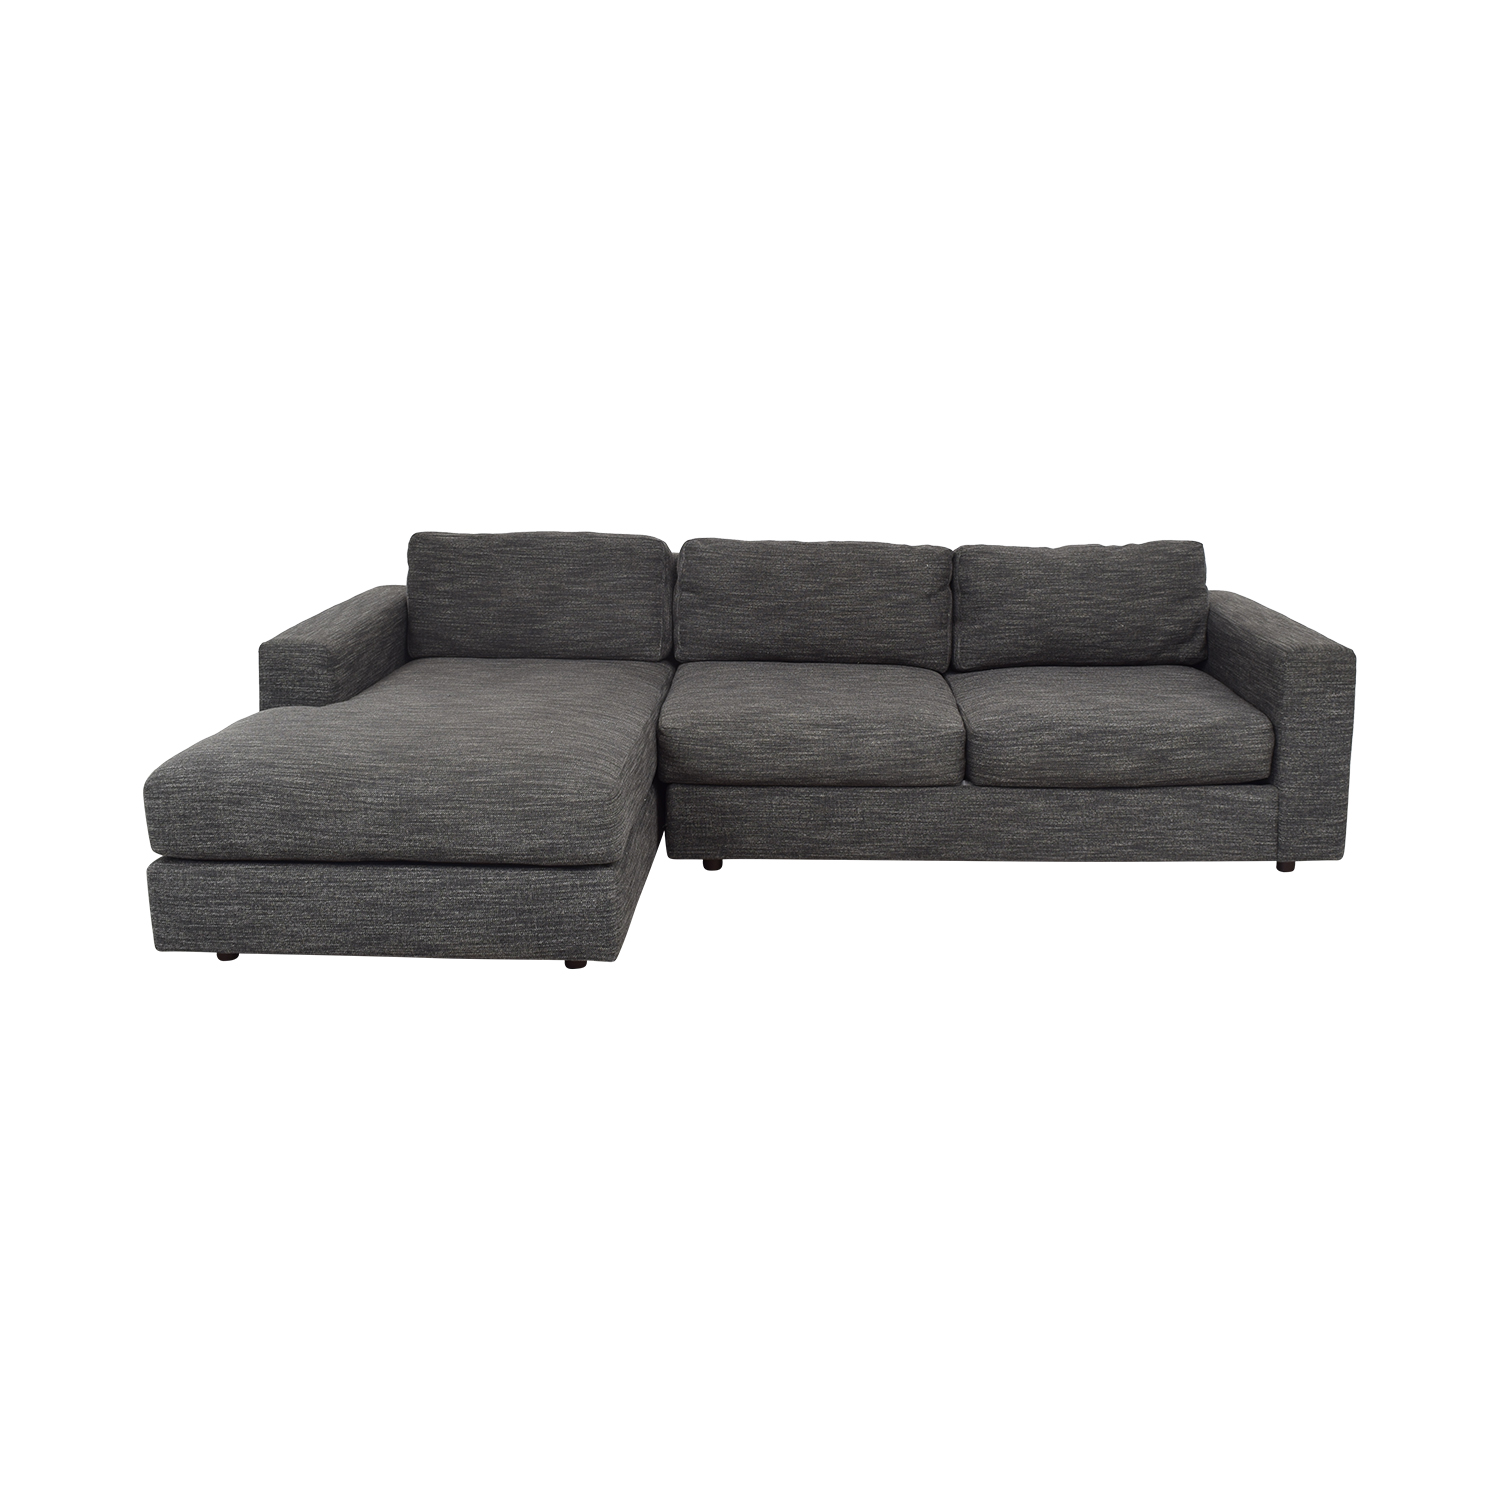 West Elm West Elm Urban Chaise Sectional Sofa nyc